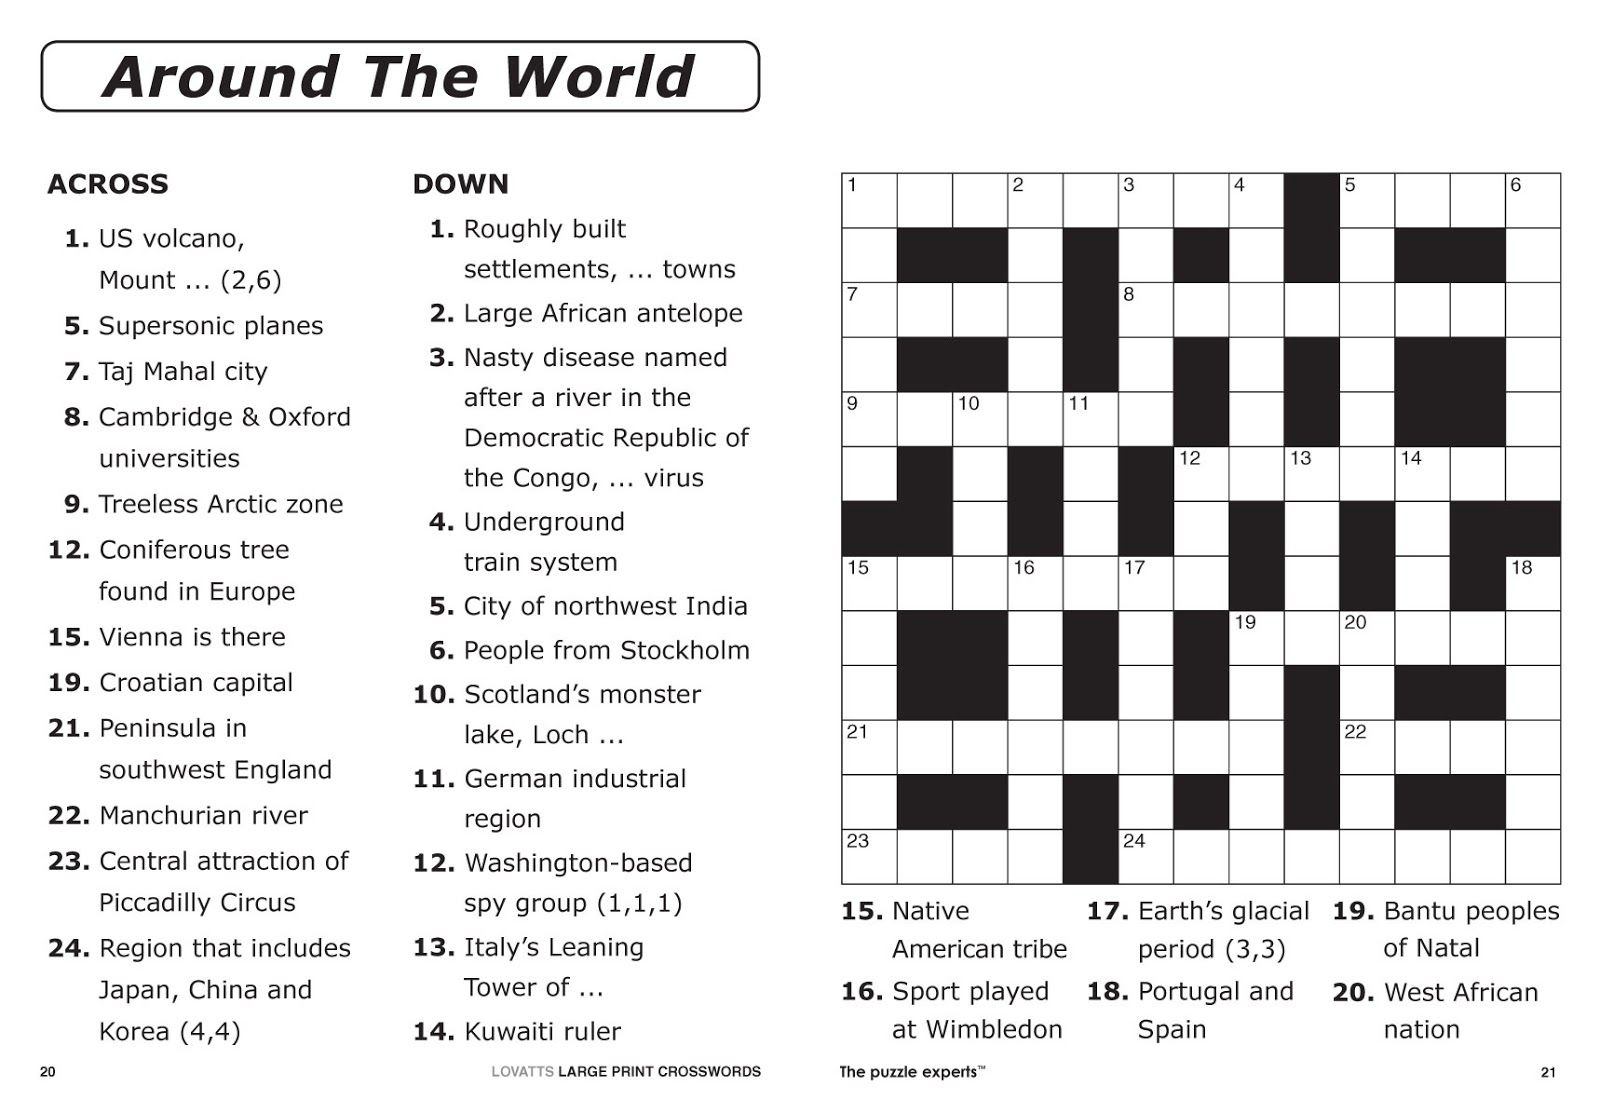 Free Printable Large Print Crossword Puzzles | M3U8 - Printable Crosswords For 6 Year Olds